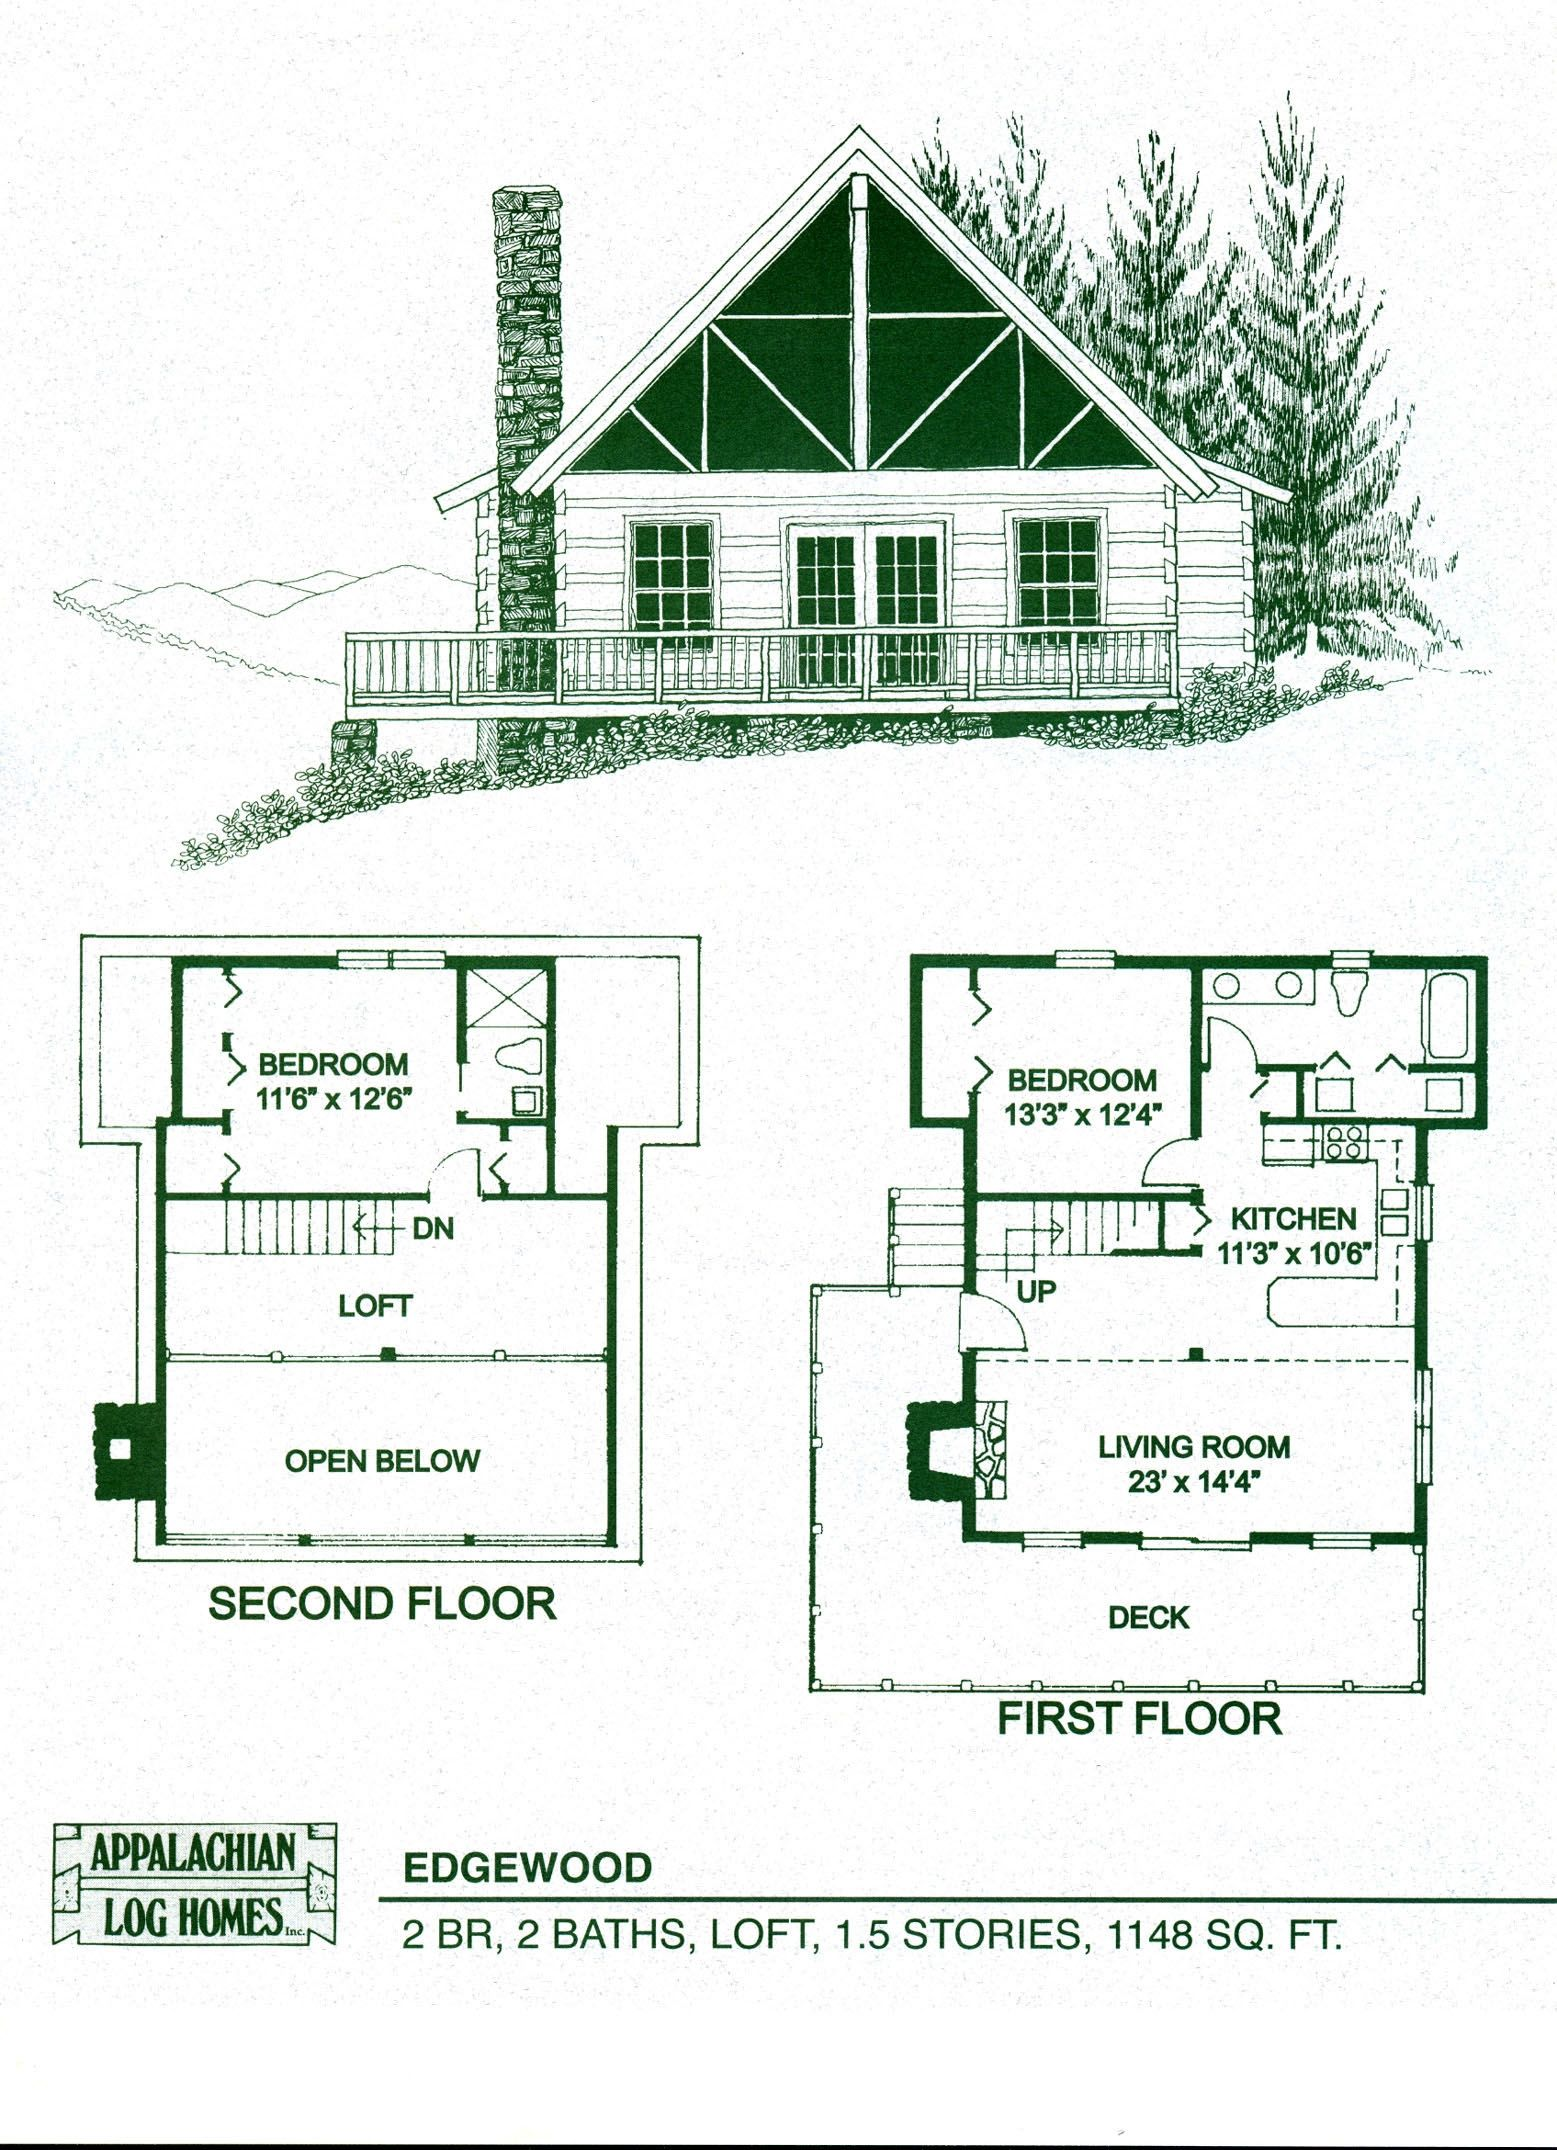 Nice Small Log Cabin Floor Plans   Shrink First Floor Bath, One Sink Is Fine.  Eliminate Second Floor Bath. Add Closet Storage To Main Floor For Insane  Amounts Of ...